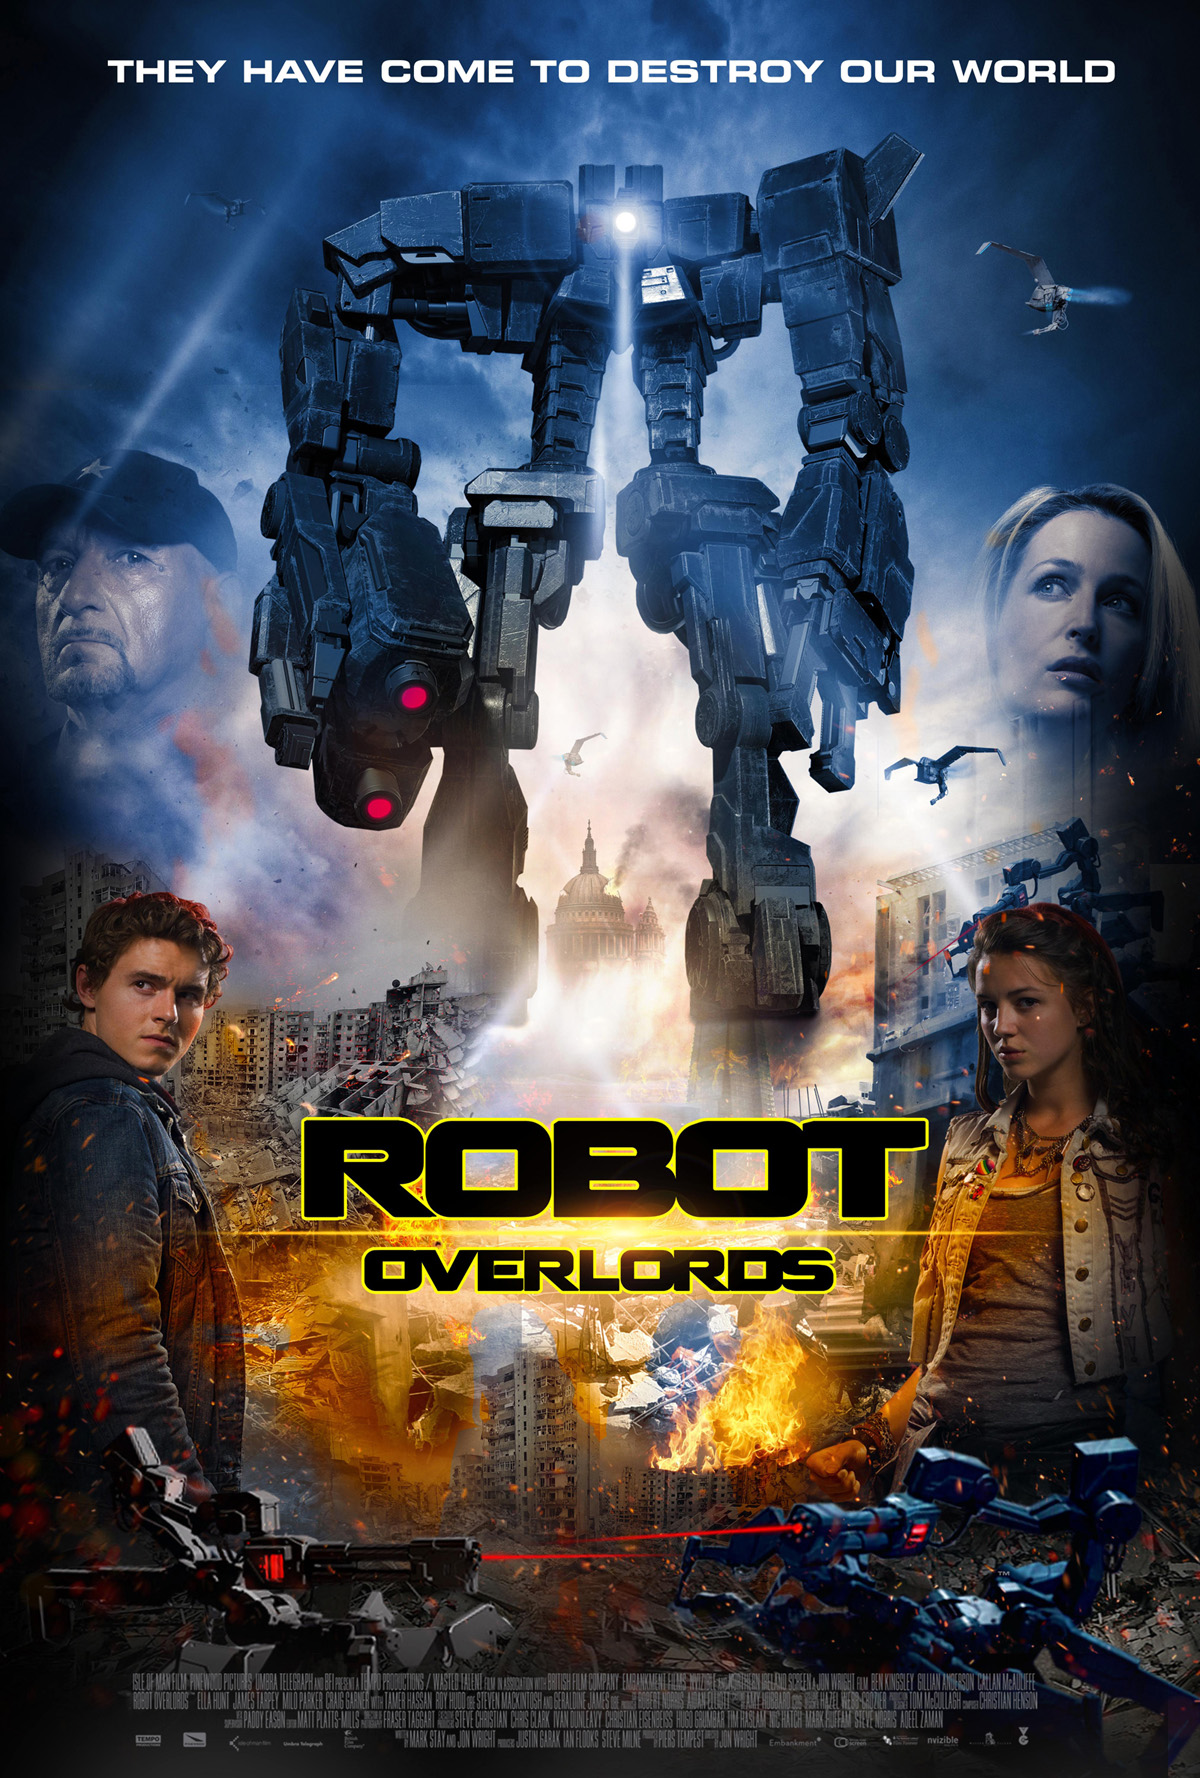 robot_overlords_poster_2014_01.jpg